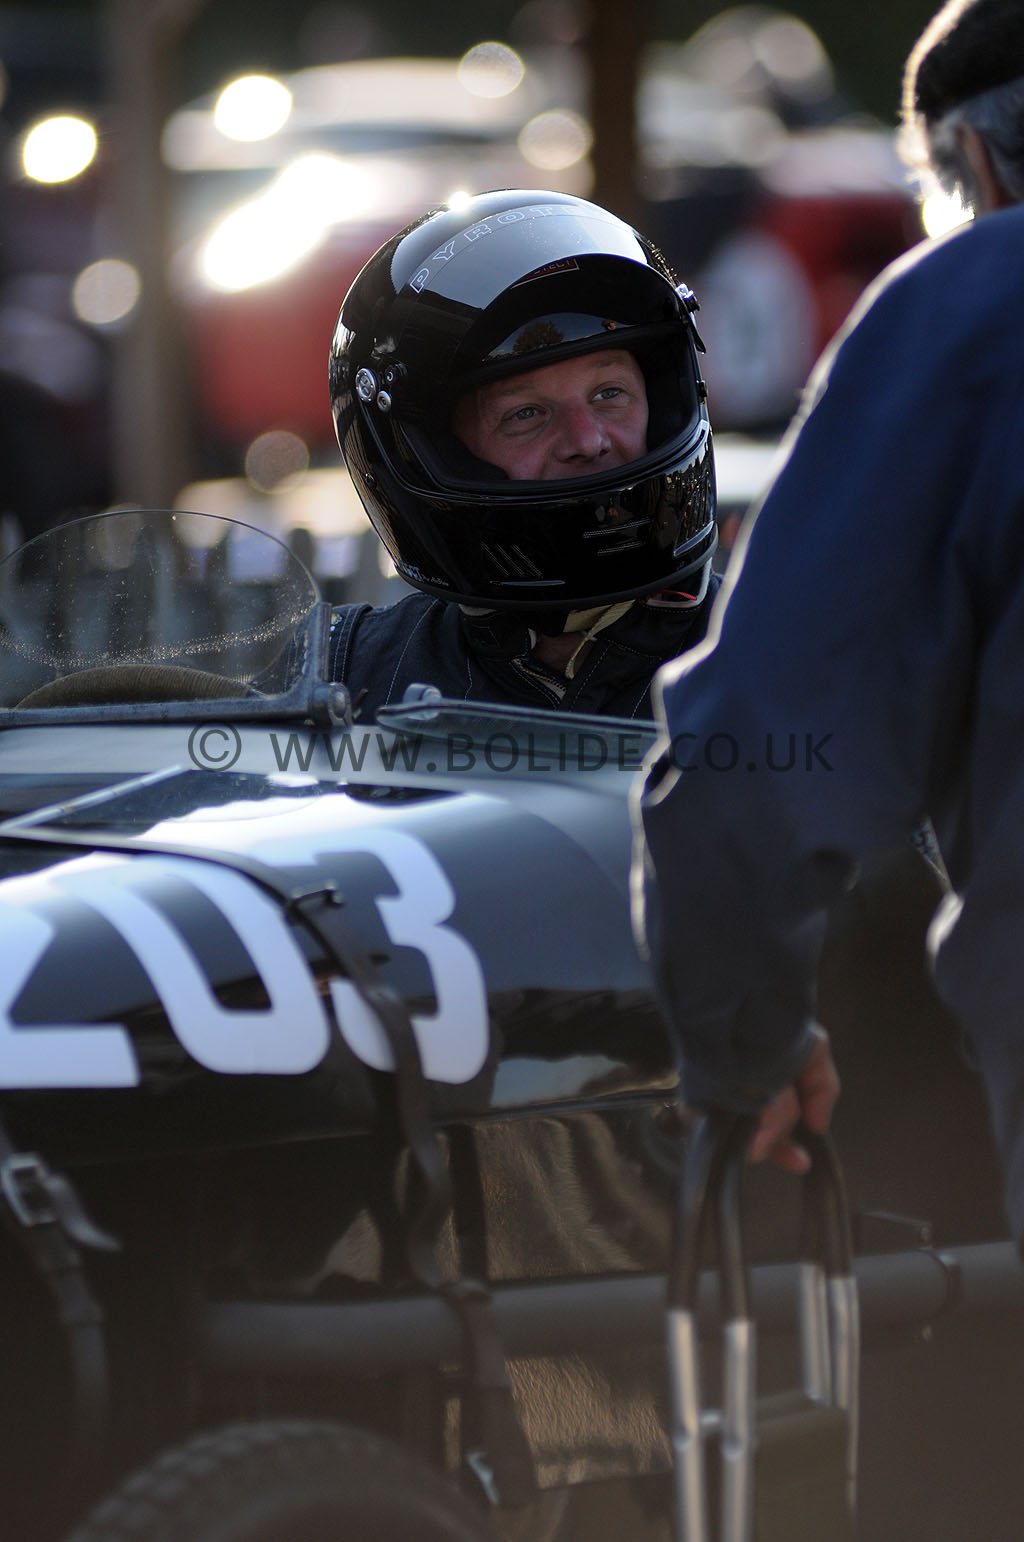 2011-vscc-goodwood-sprint-7503